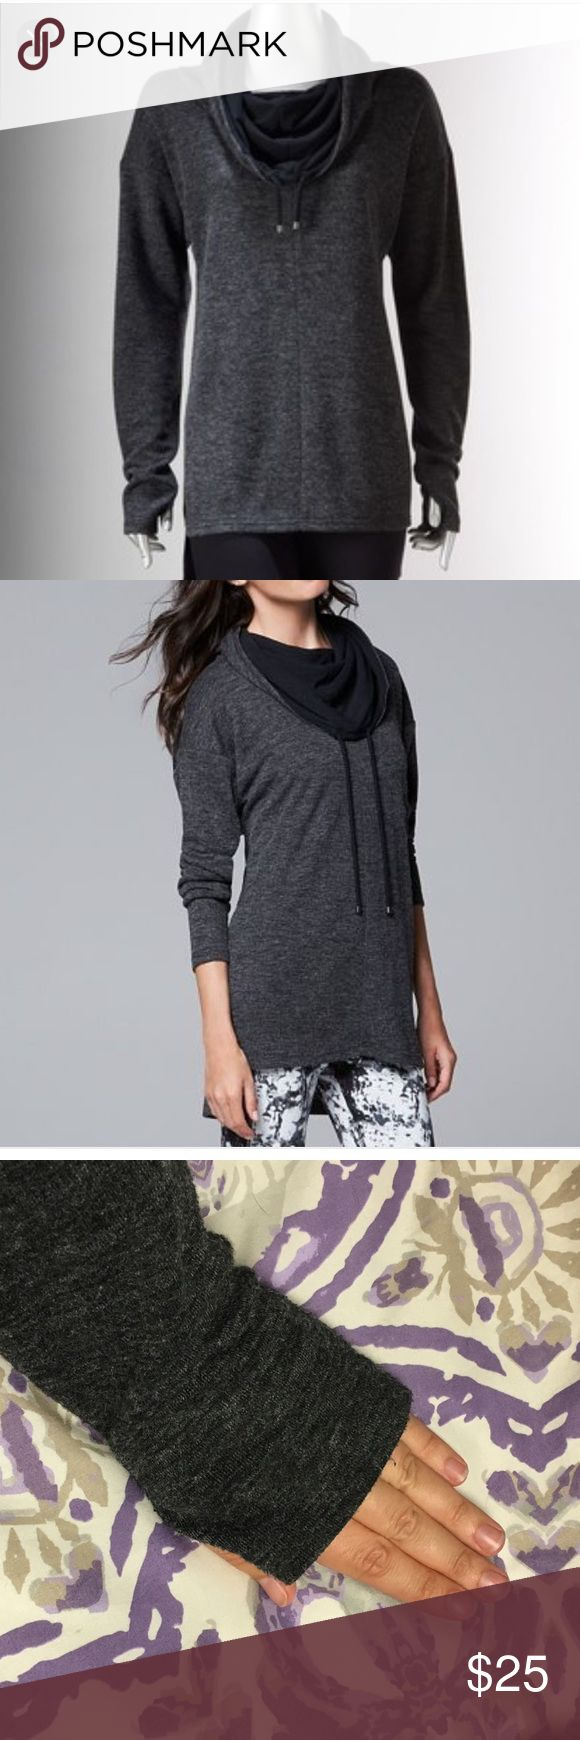 Simply Vera Vera Wang Cowl Neck Sweatshirt Amazing dark grey Simply Vera Vera Wang cowl neck sweatshirt. Only worn a few times. Super comfy! Love the thumb holes. Cozy and fashionable at the same time! Size Large, runs a little large Simply Vera Vera Wang Tops